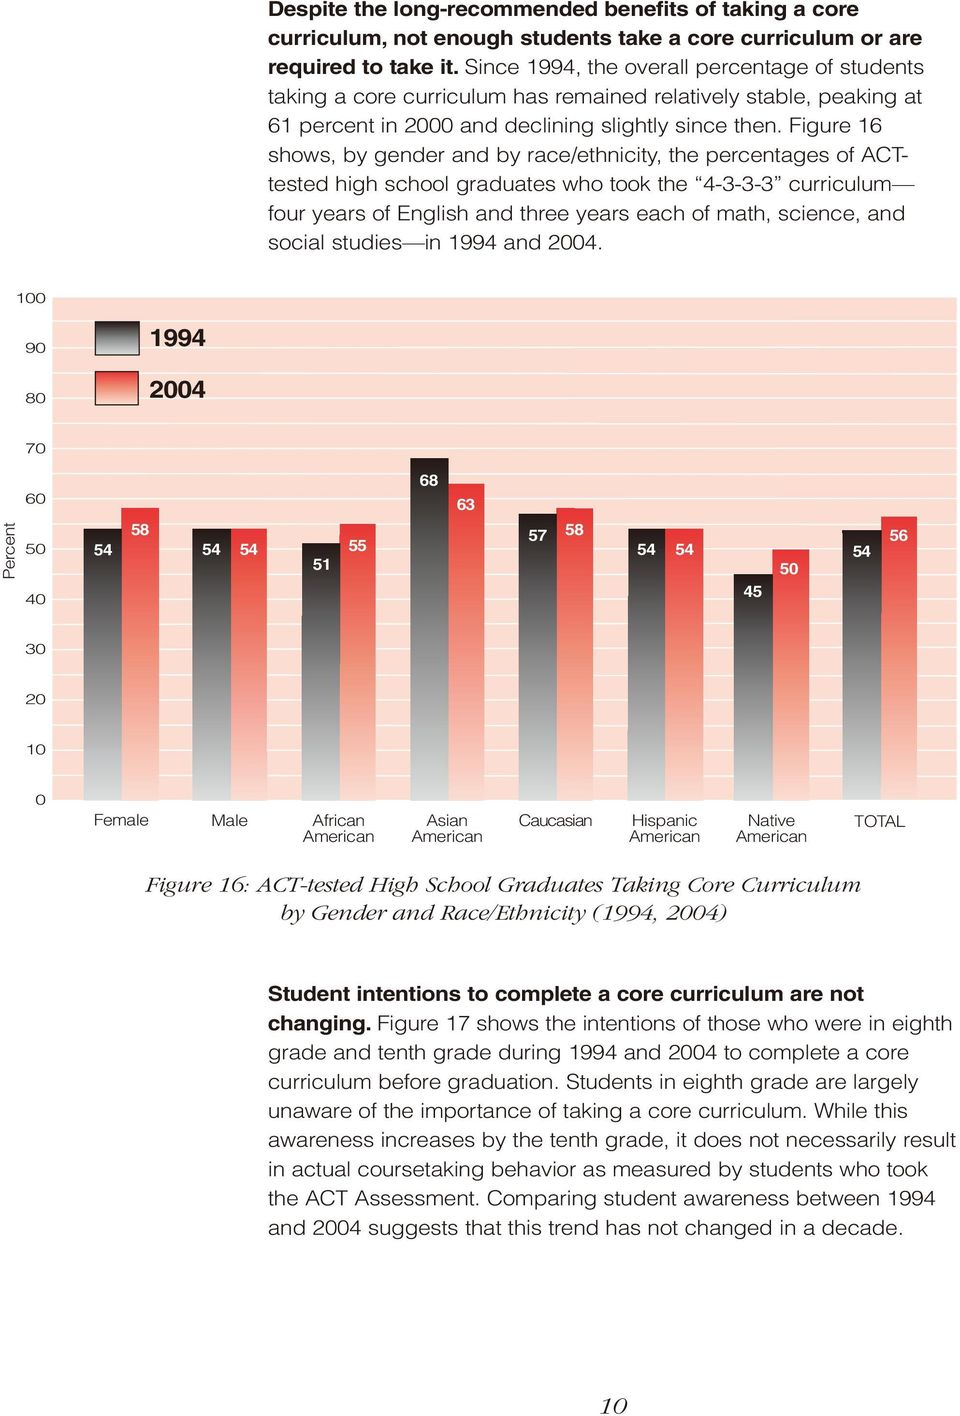 Figure 16 shows, by gender and by race/ethnicity, the percentages of ACTtested high school graduates who took the 4-3-3-3 curriculum four years of English and three years each of math, science, and